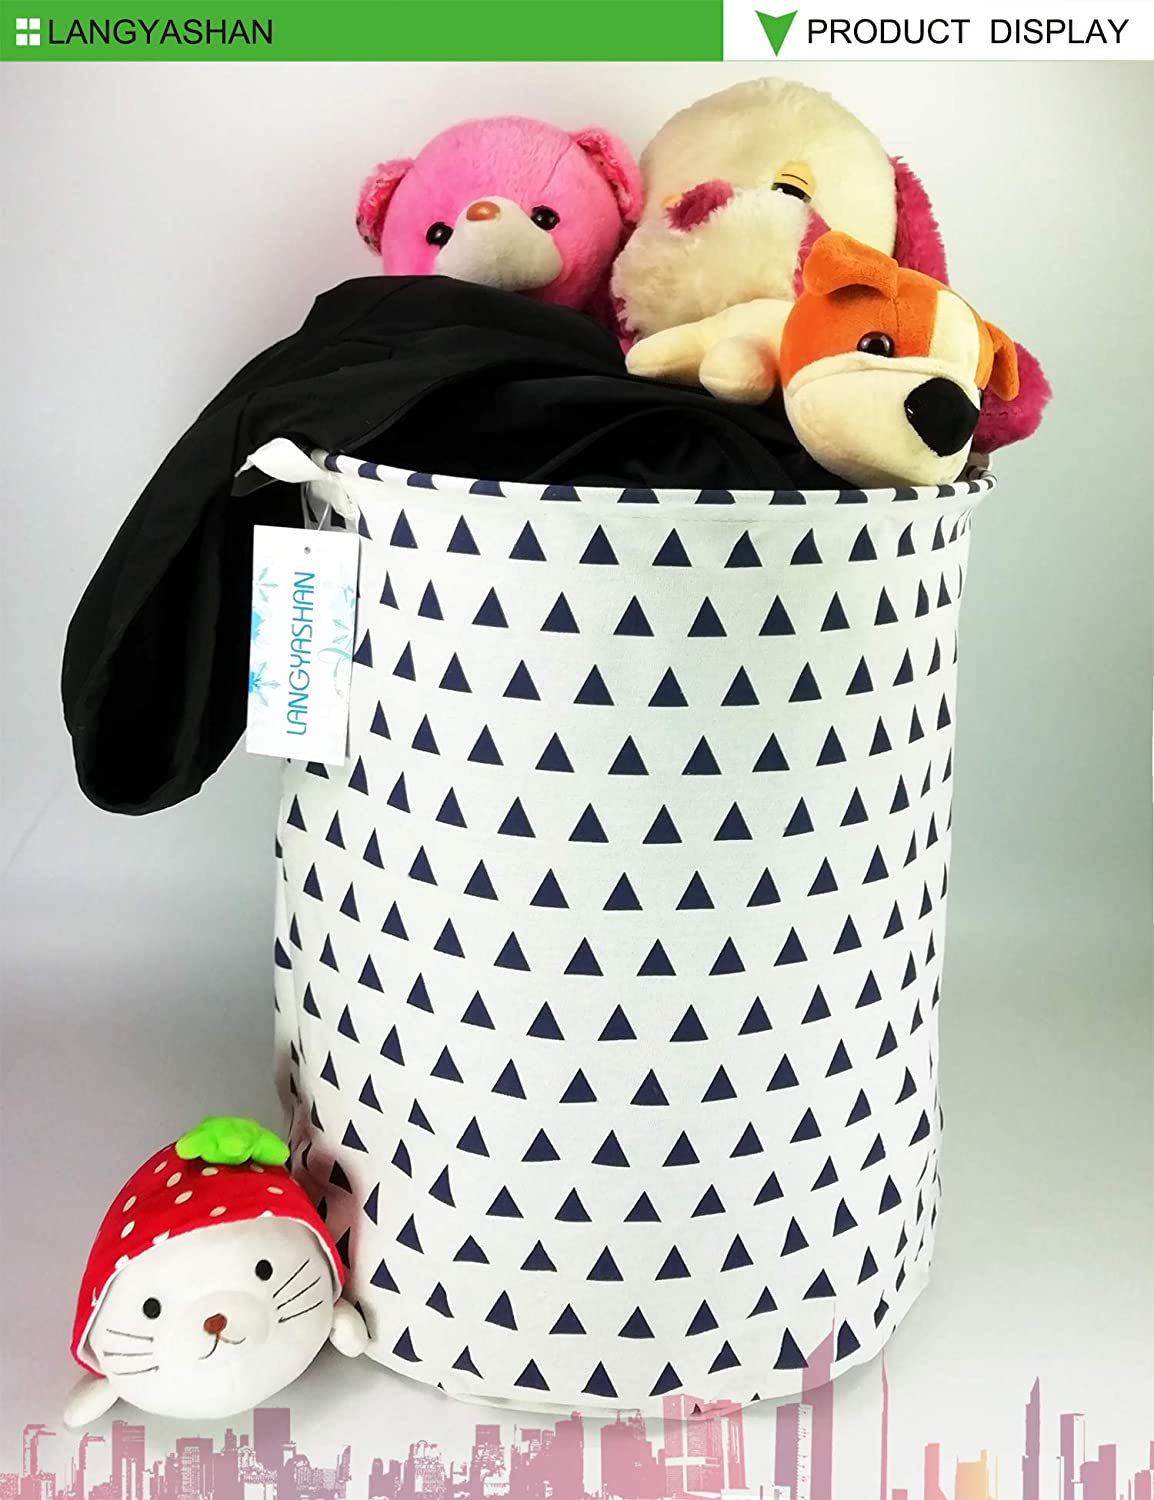 Squint Unicorn Bedroom LANGYASHAN Storage Bin,Canvas Fabric Collapsible Organizer Basket for Laundry Hamper,Toy Bins,Gift Baskets Clothes,Baby Nursery